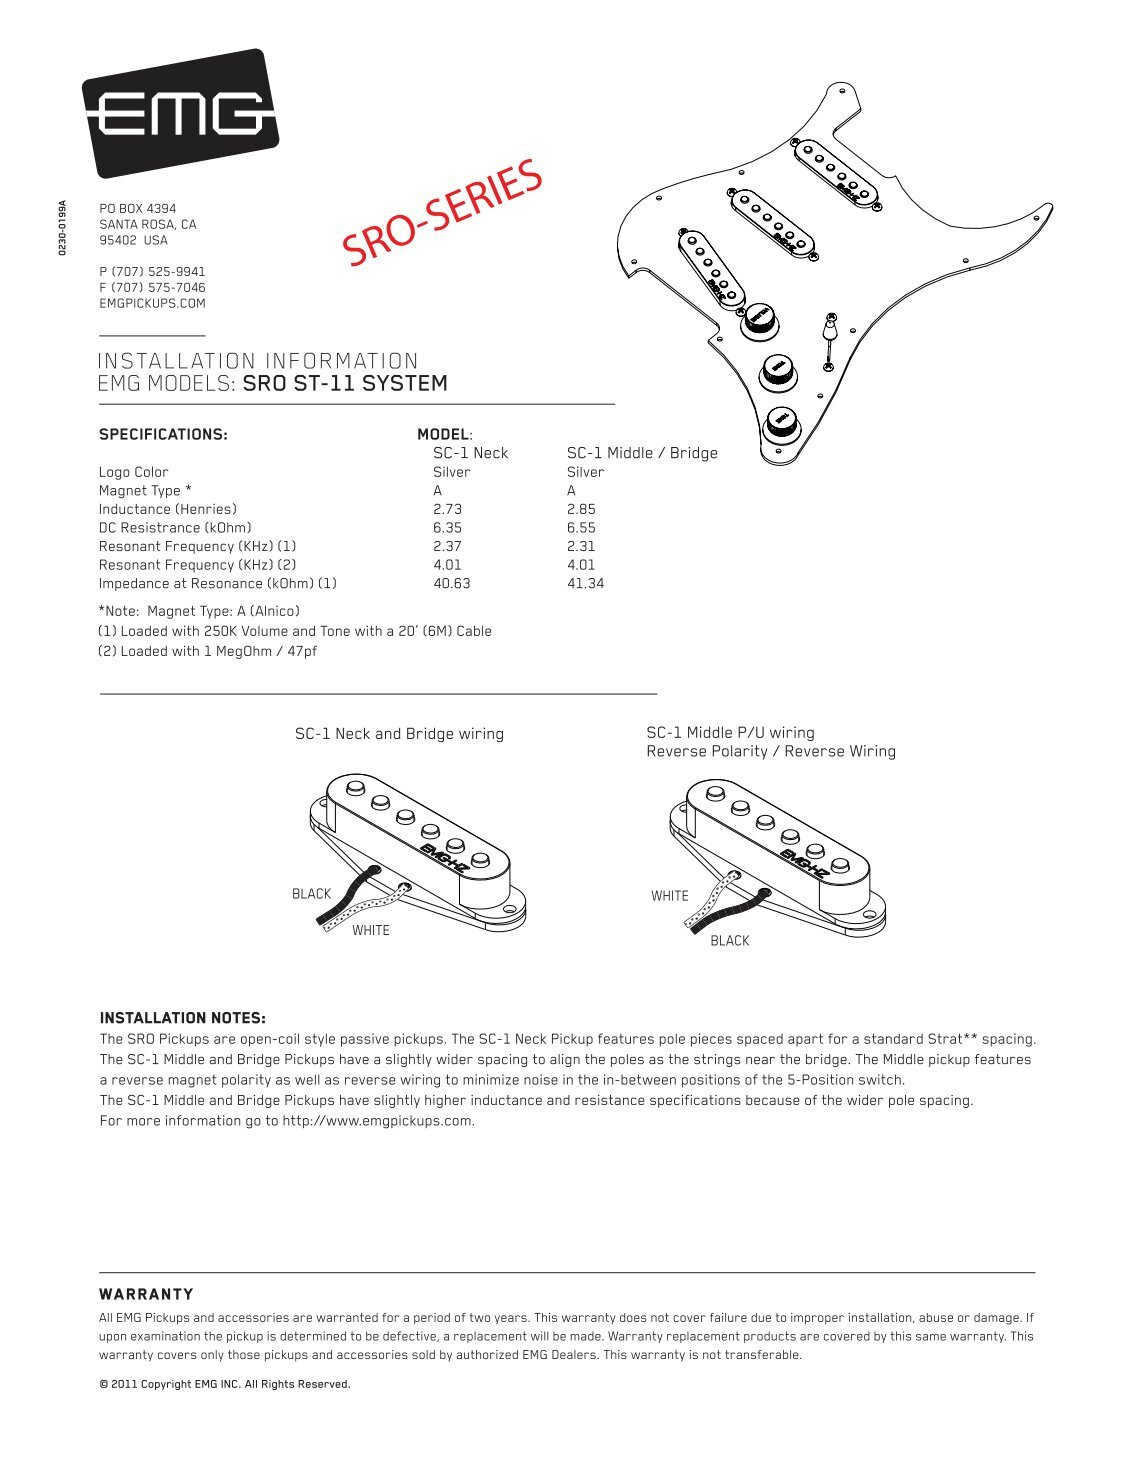 Jackson Dk1 Wiring Diagram - Wiring Diagram G11 on jackson performer wiring, jca20h diagram, jackson electric guitar schematic, jackson king v schematic, jackson guitar wiring schematics, jackson 3-way switches, jackson flying v wiring, guitar string diagram,